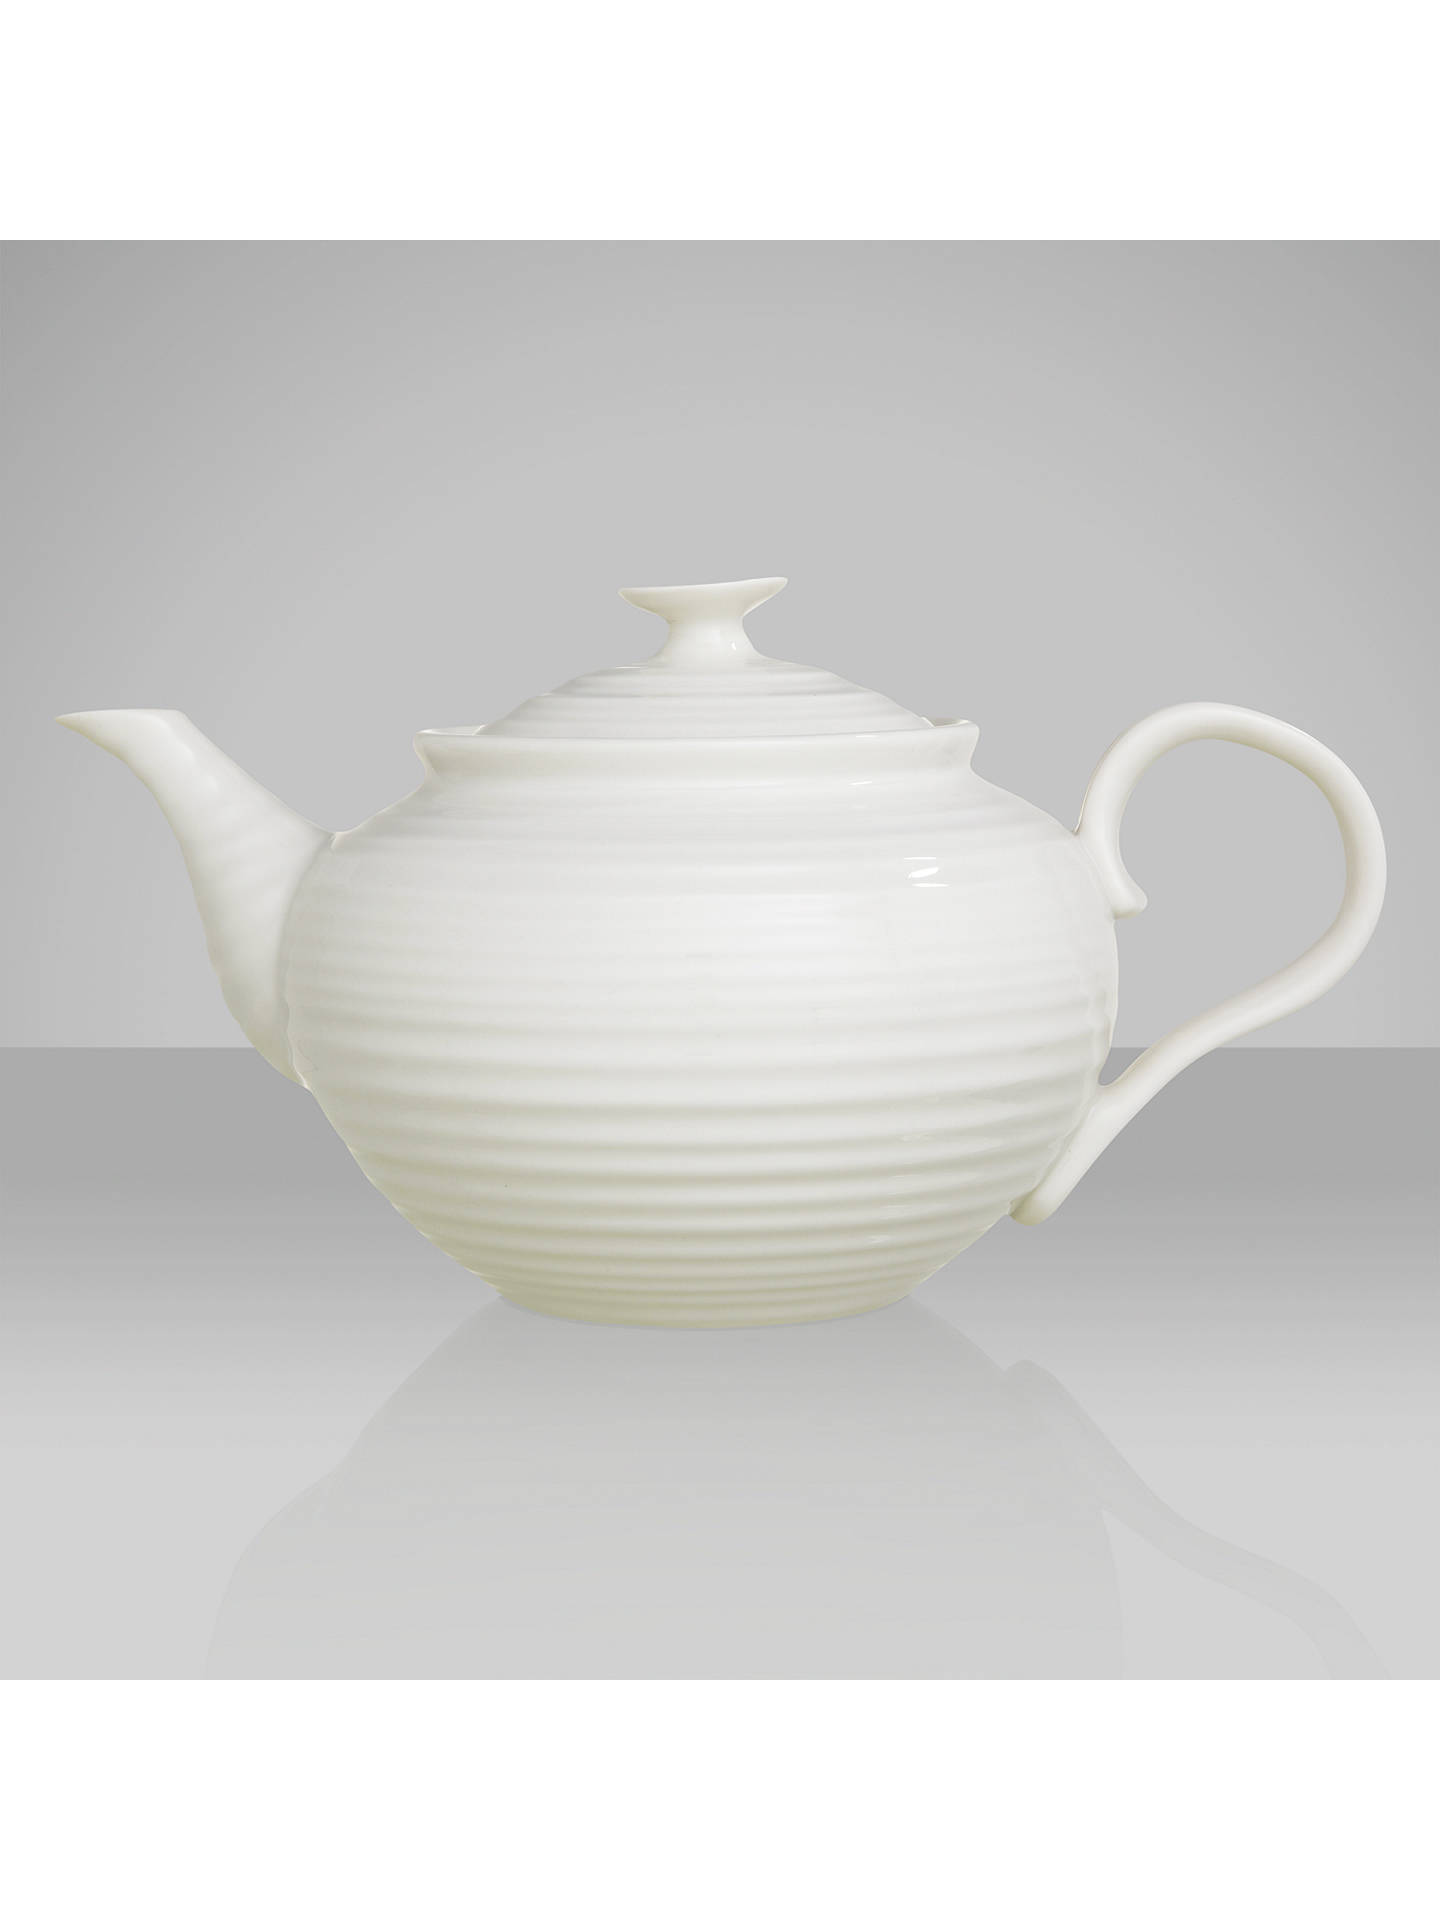 BuySophie Conran for Portmeirion Teapot, 340ml, White Online at johnlewis.com